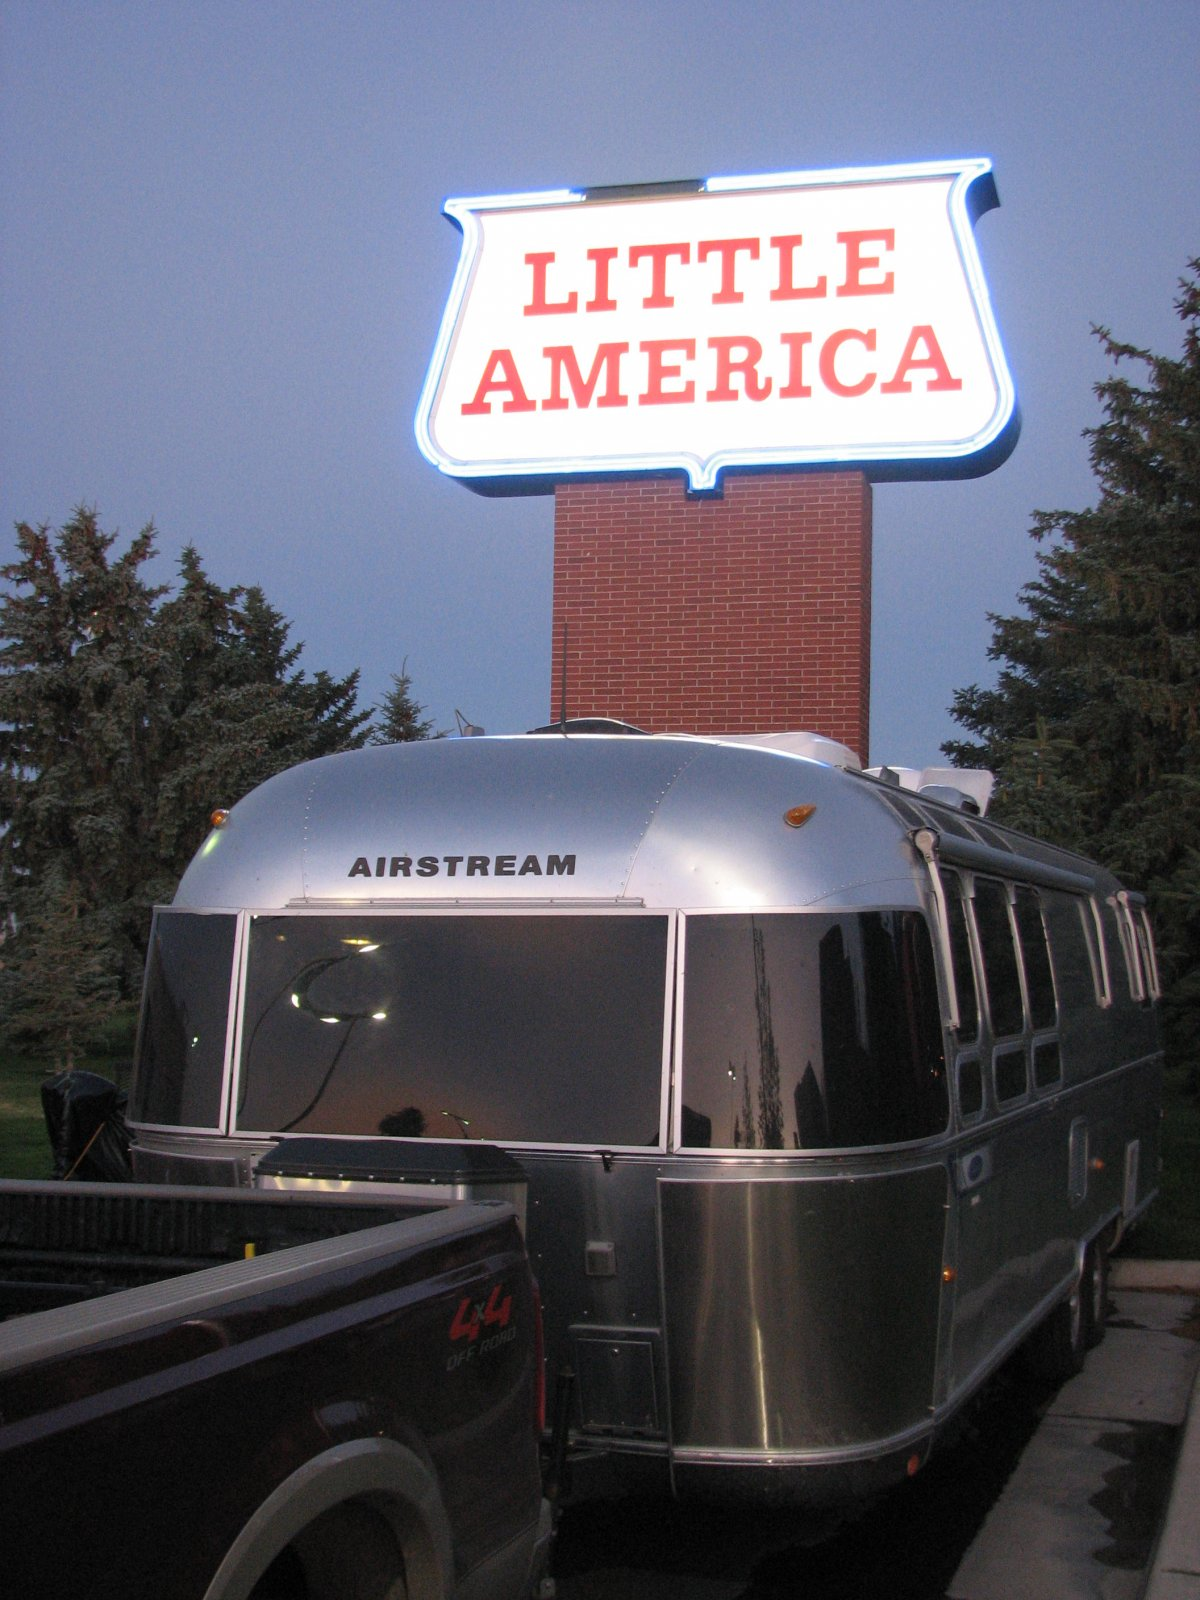 Click image for larger version  Name:Little_America.jpg Views:85 Size:287.8 KB ID:107705